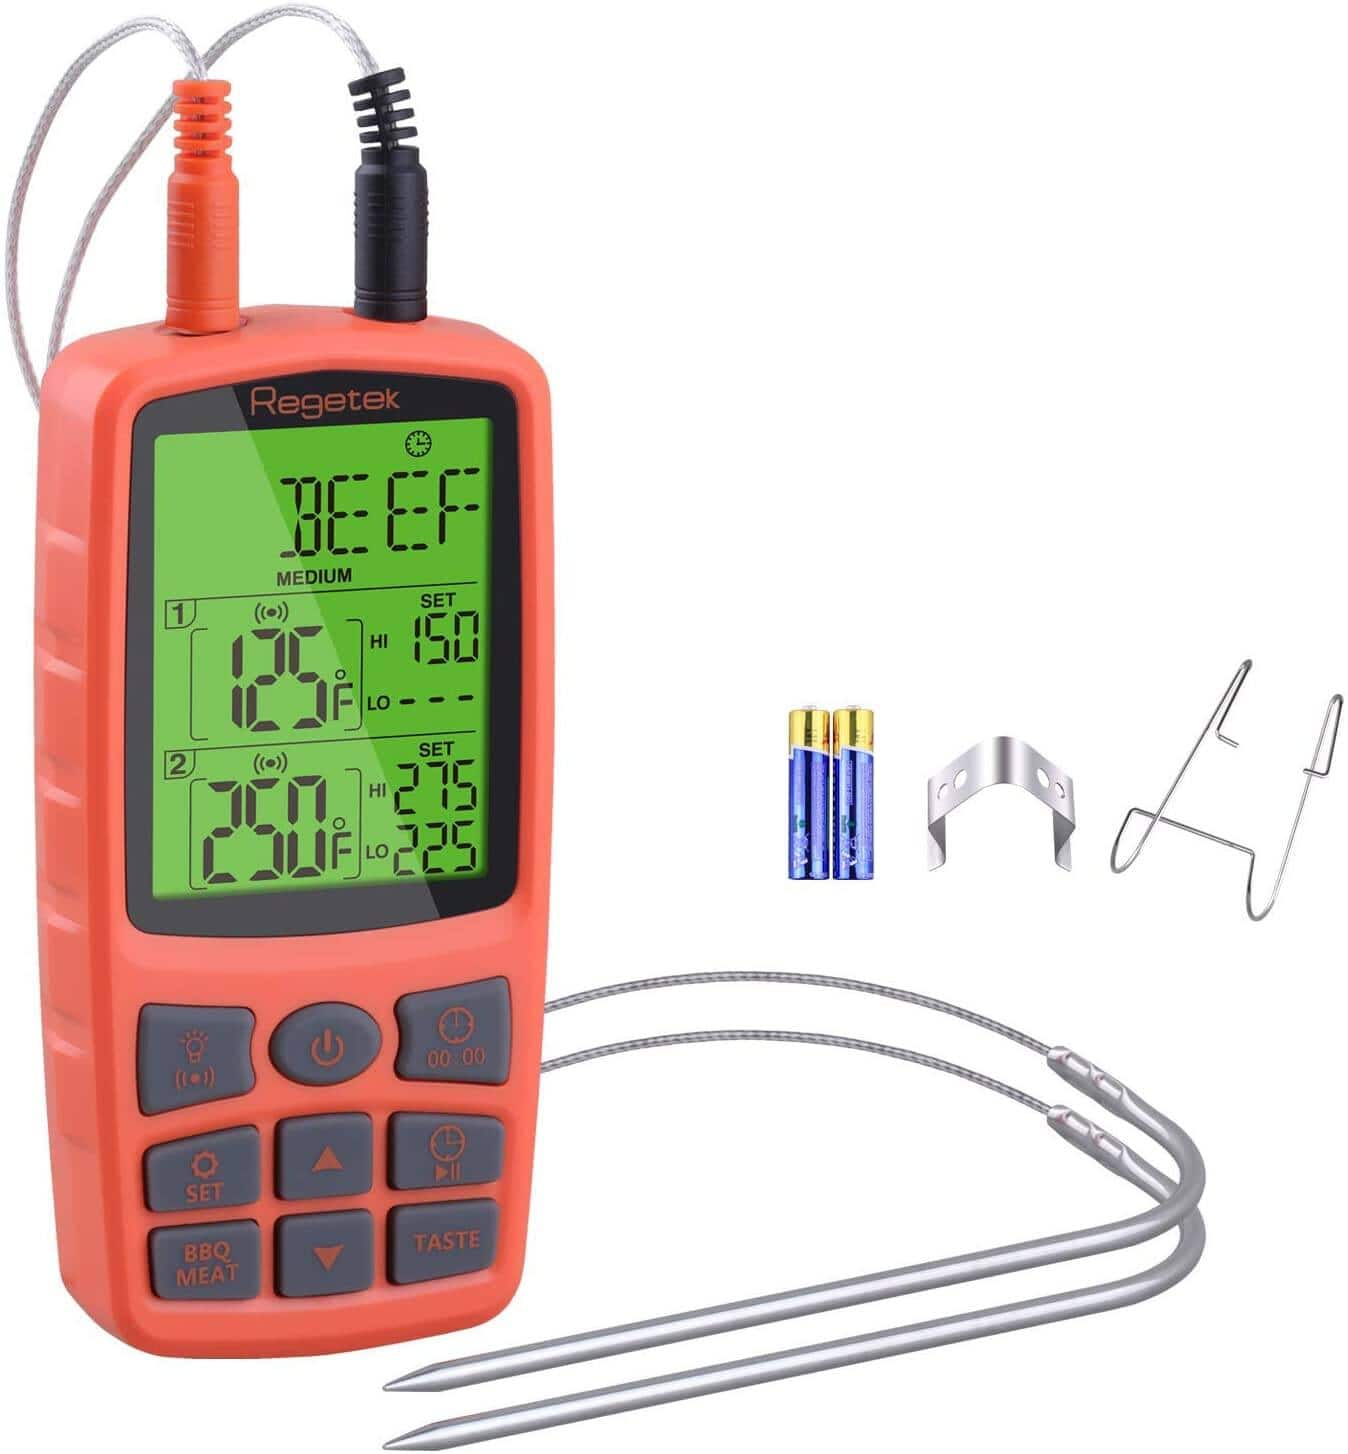 Regetek Wired Food Thermometer w/ Dual Probe for $12.99 + Free Shipping